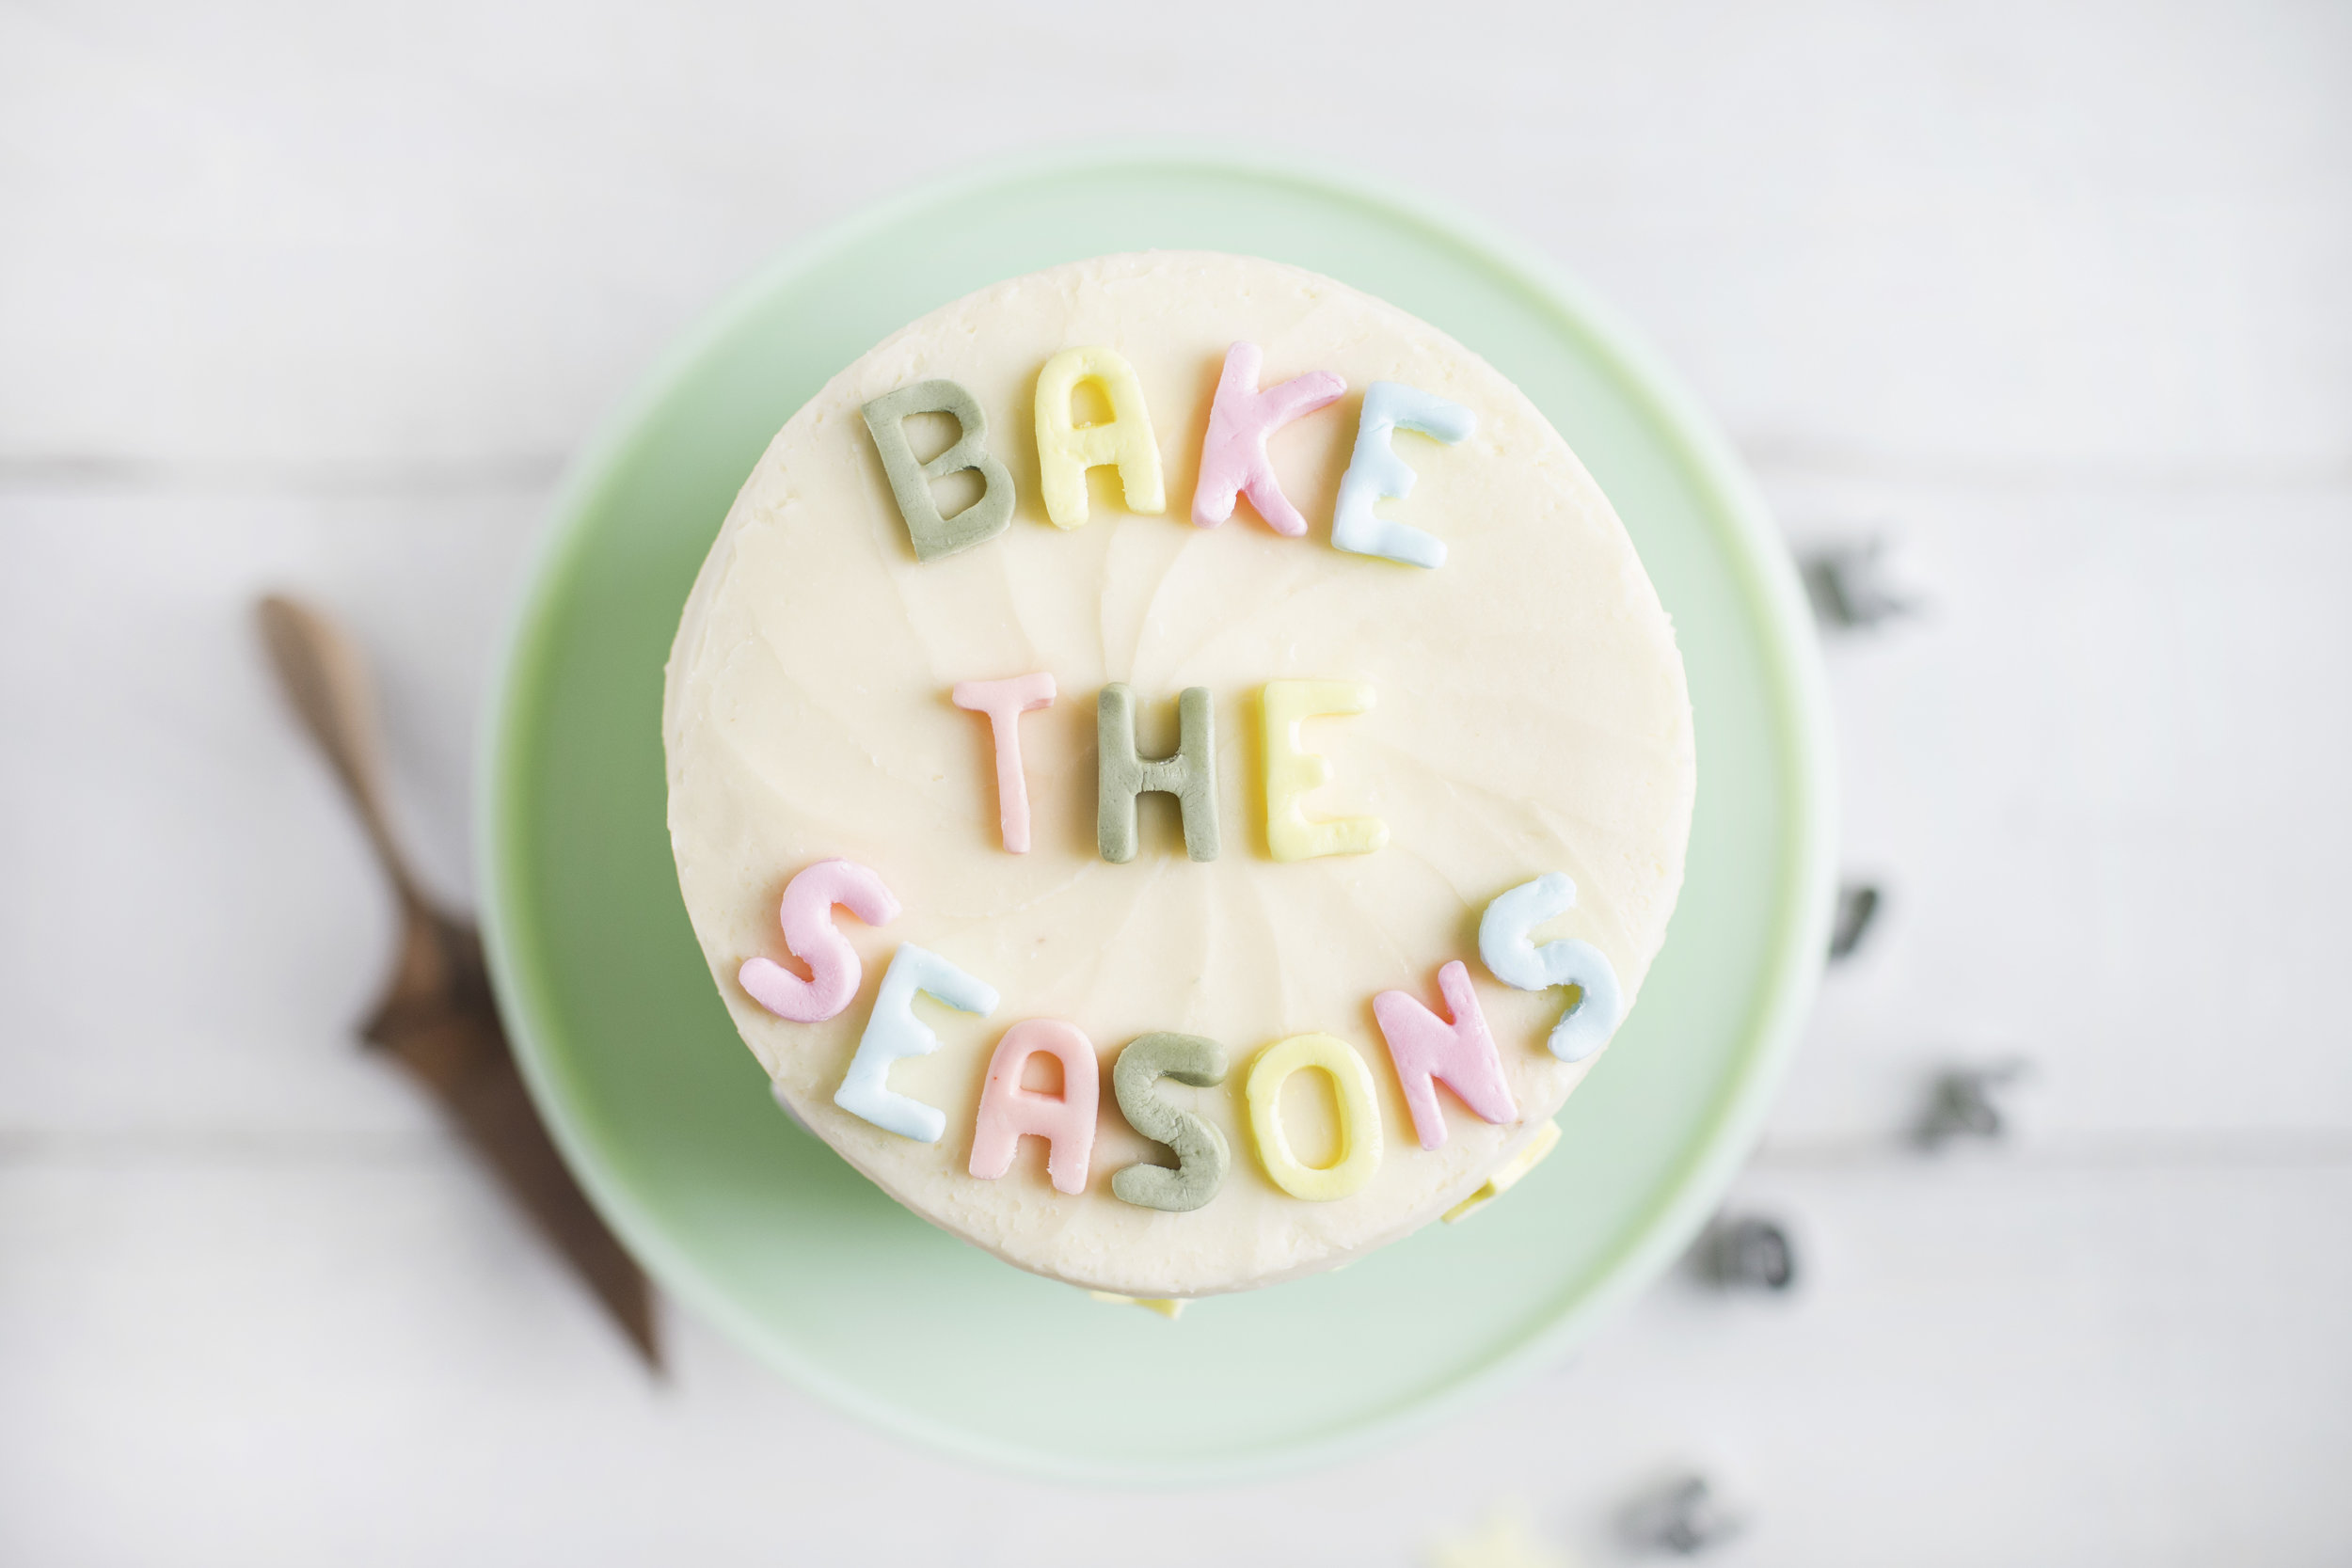 bake the seasons cake iv.jpg